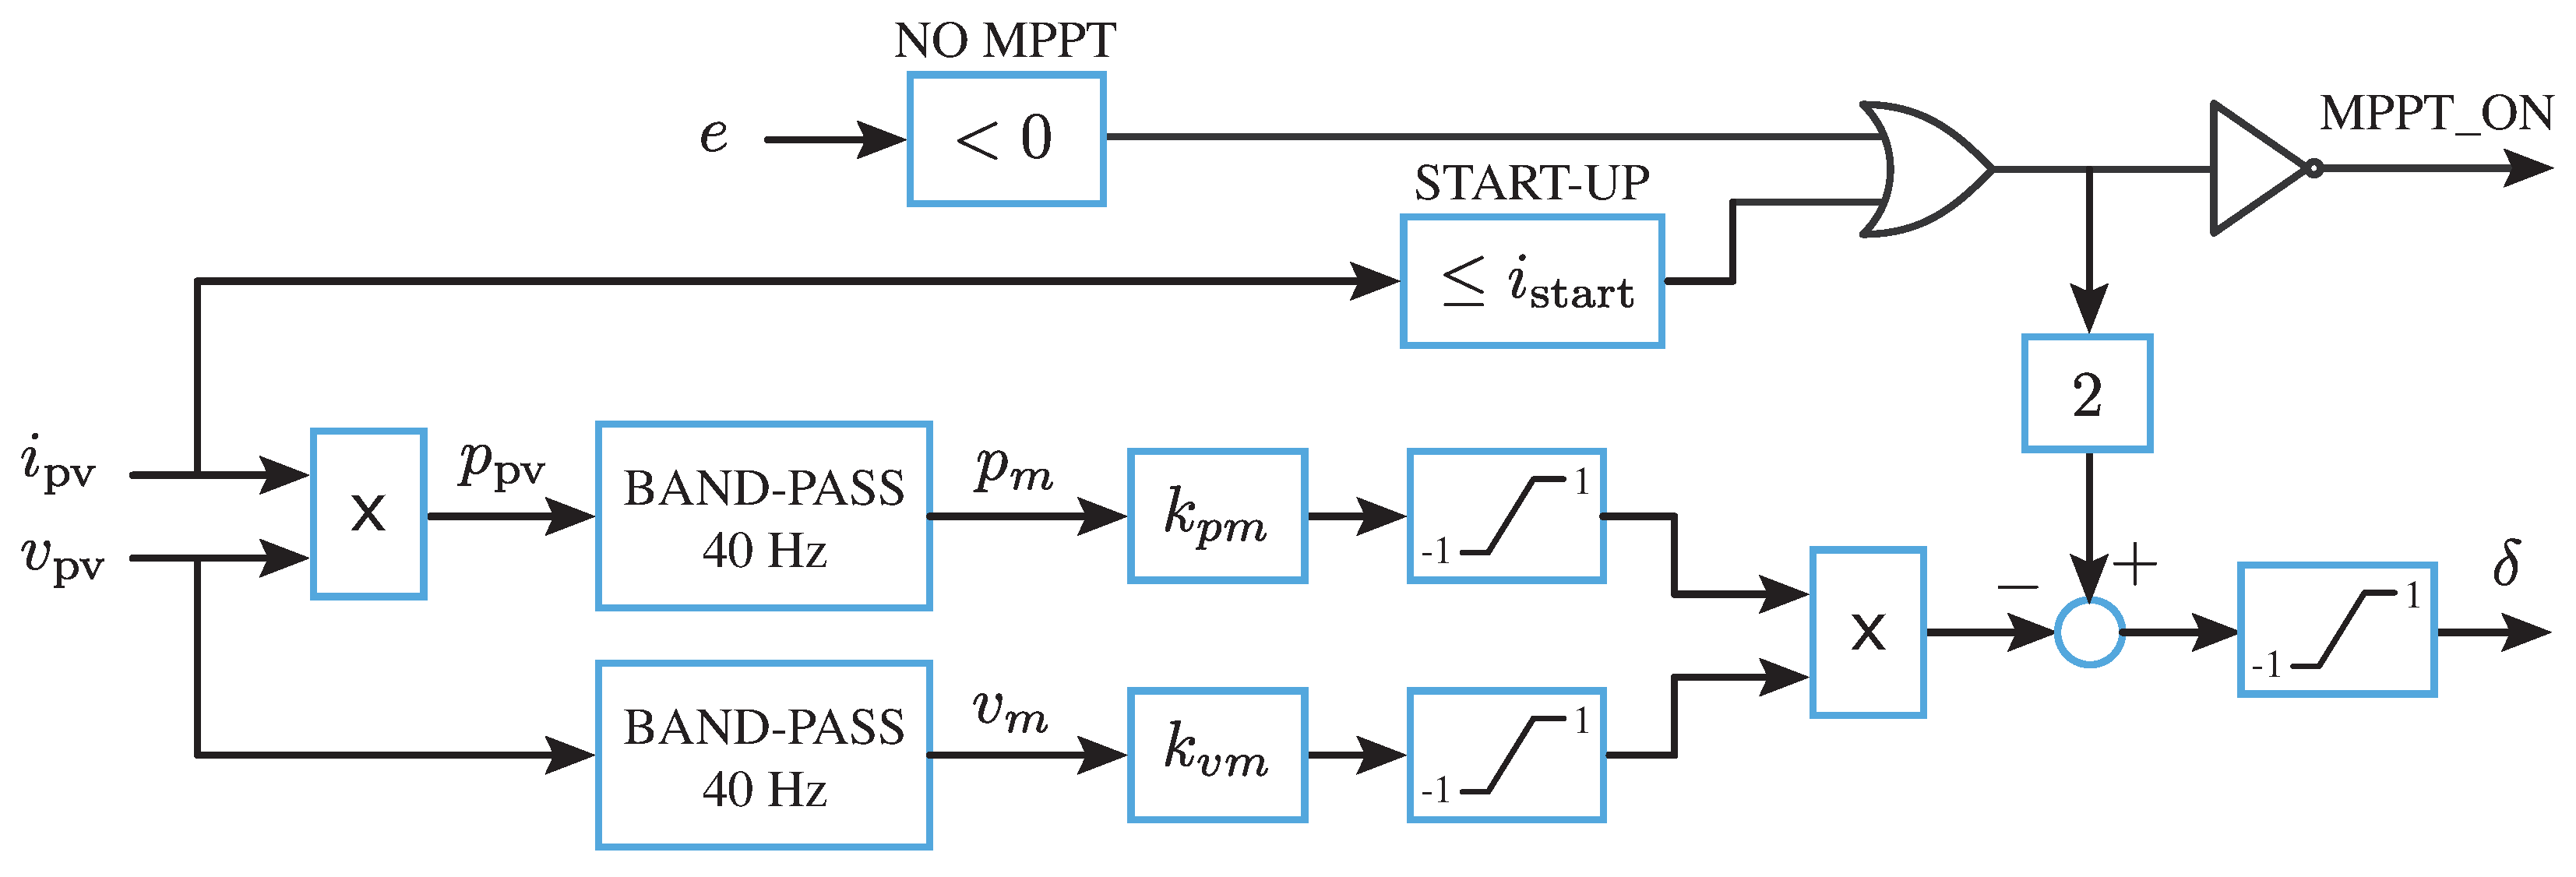 Energies | Free Full-Text | A Novel Fast MPPT Strategy for